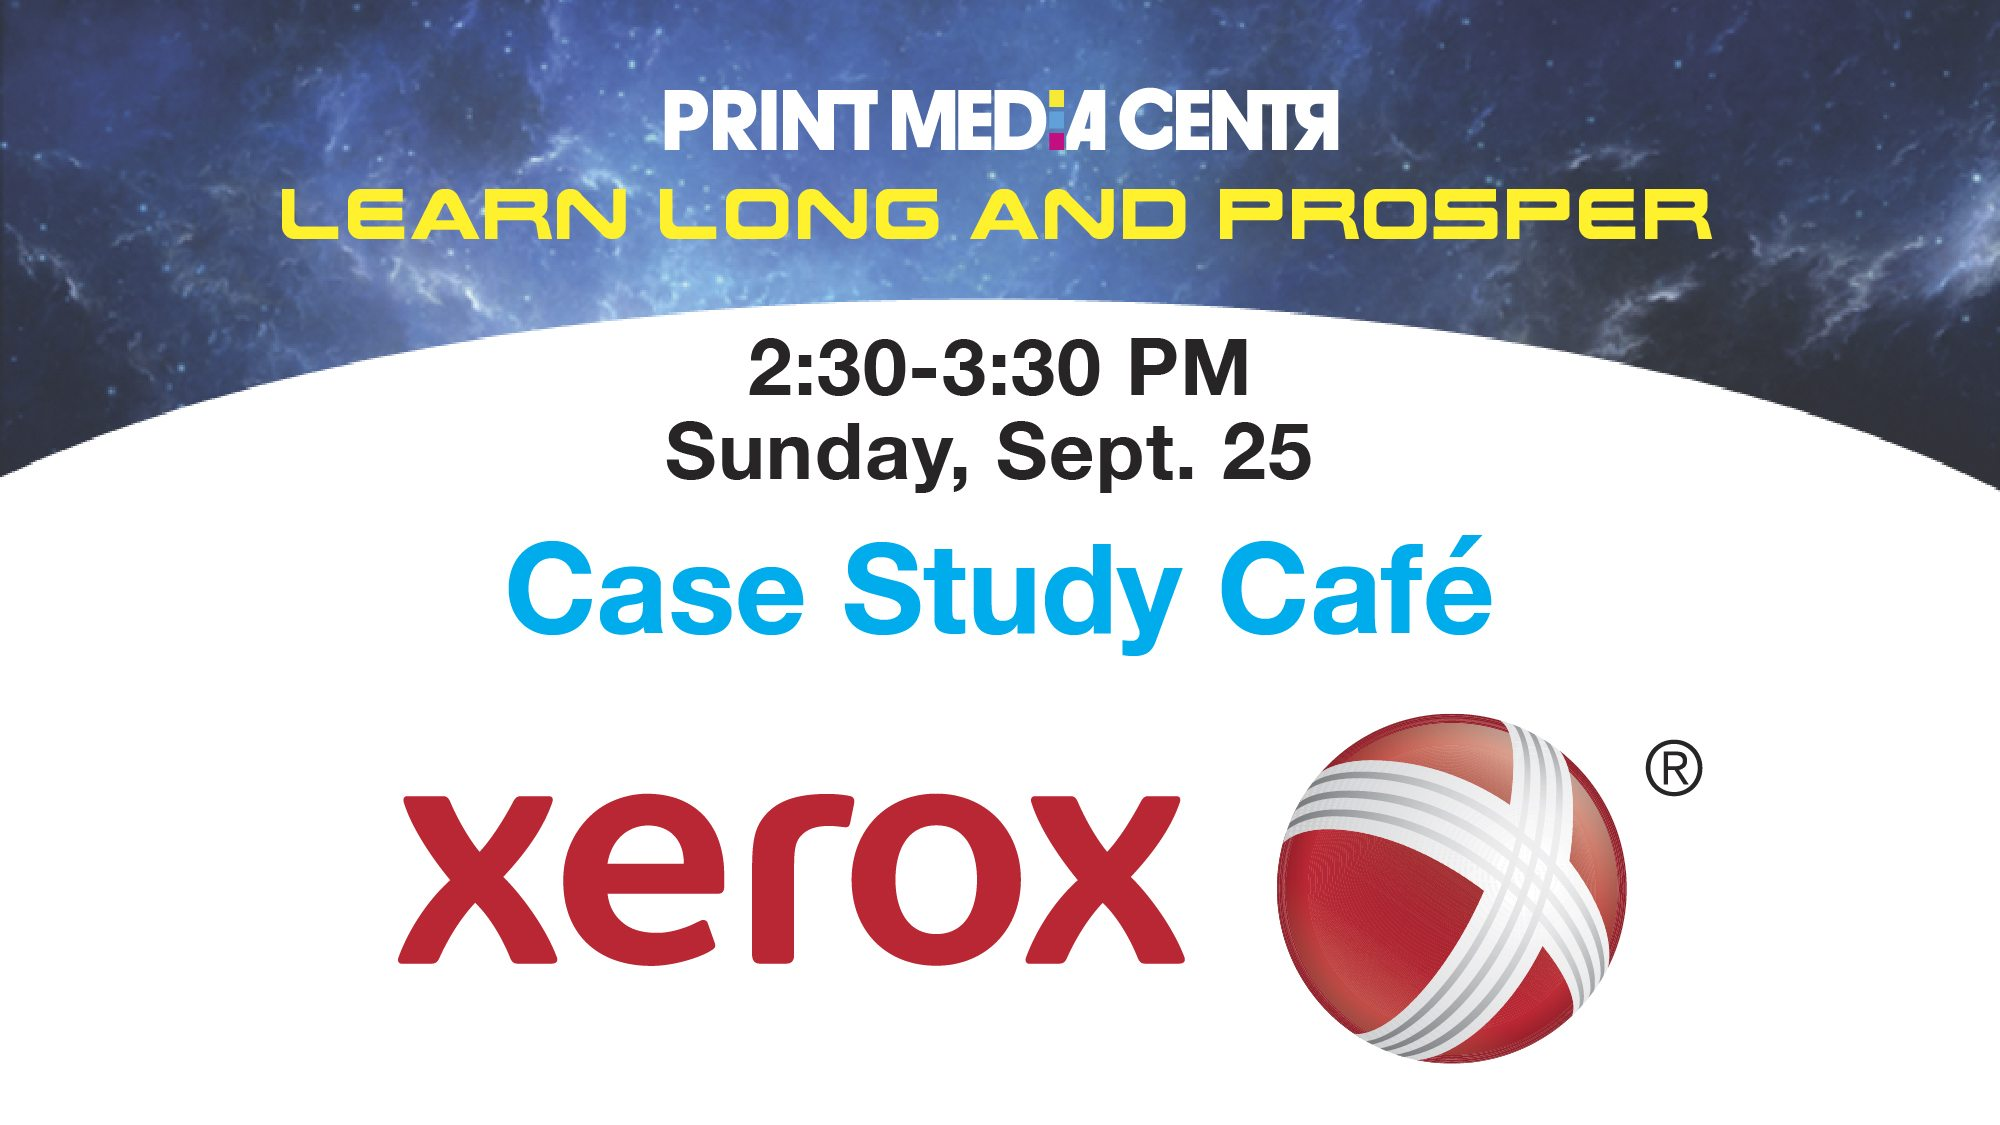 xerox case study summary Xerox case study analysis xerox's book in time is a revolutionary product, presenting some new opportunities for the company it is simply a matter of costs the book-in-time equipment allows for a publishing company to produce a 300-page book for $690, something which could have been previously reached only for lots larger than 1,000 copies.